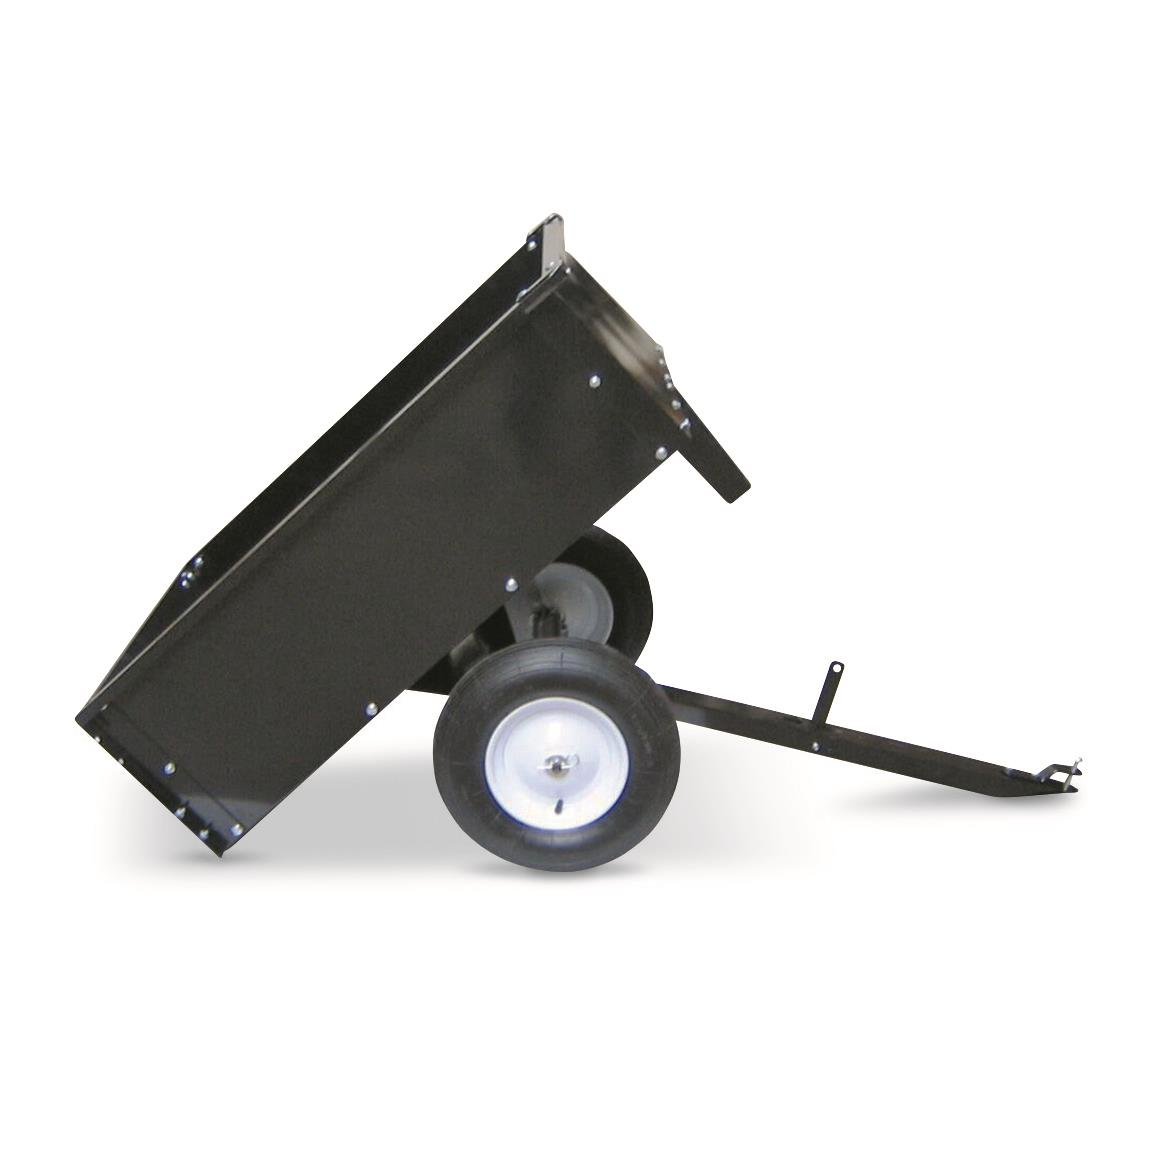 Easy-to-use dumping mechanism